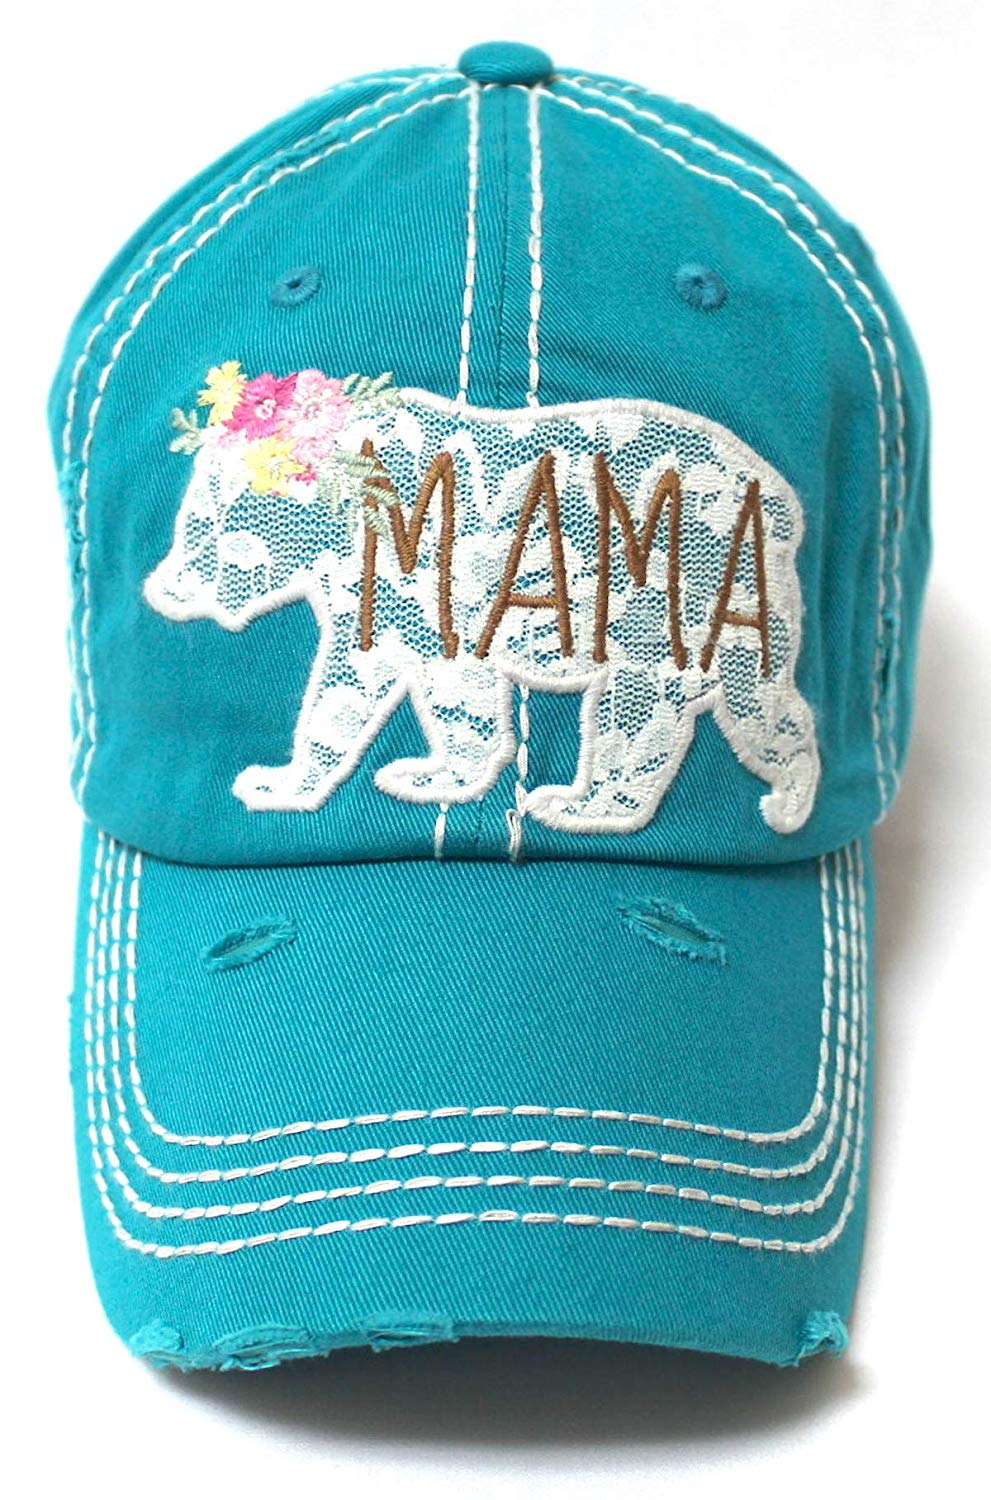 Women's Vintage Mama Graphic Cap, Spring Floral Lace Bear Embroidery, Turquoise - Caps 'N Vintage